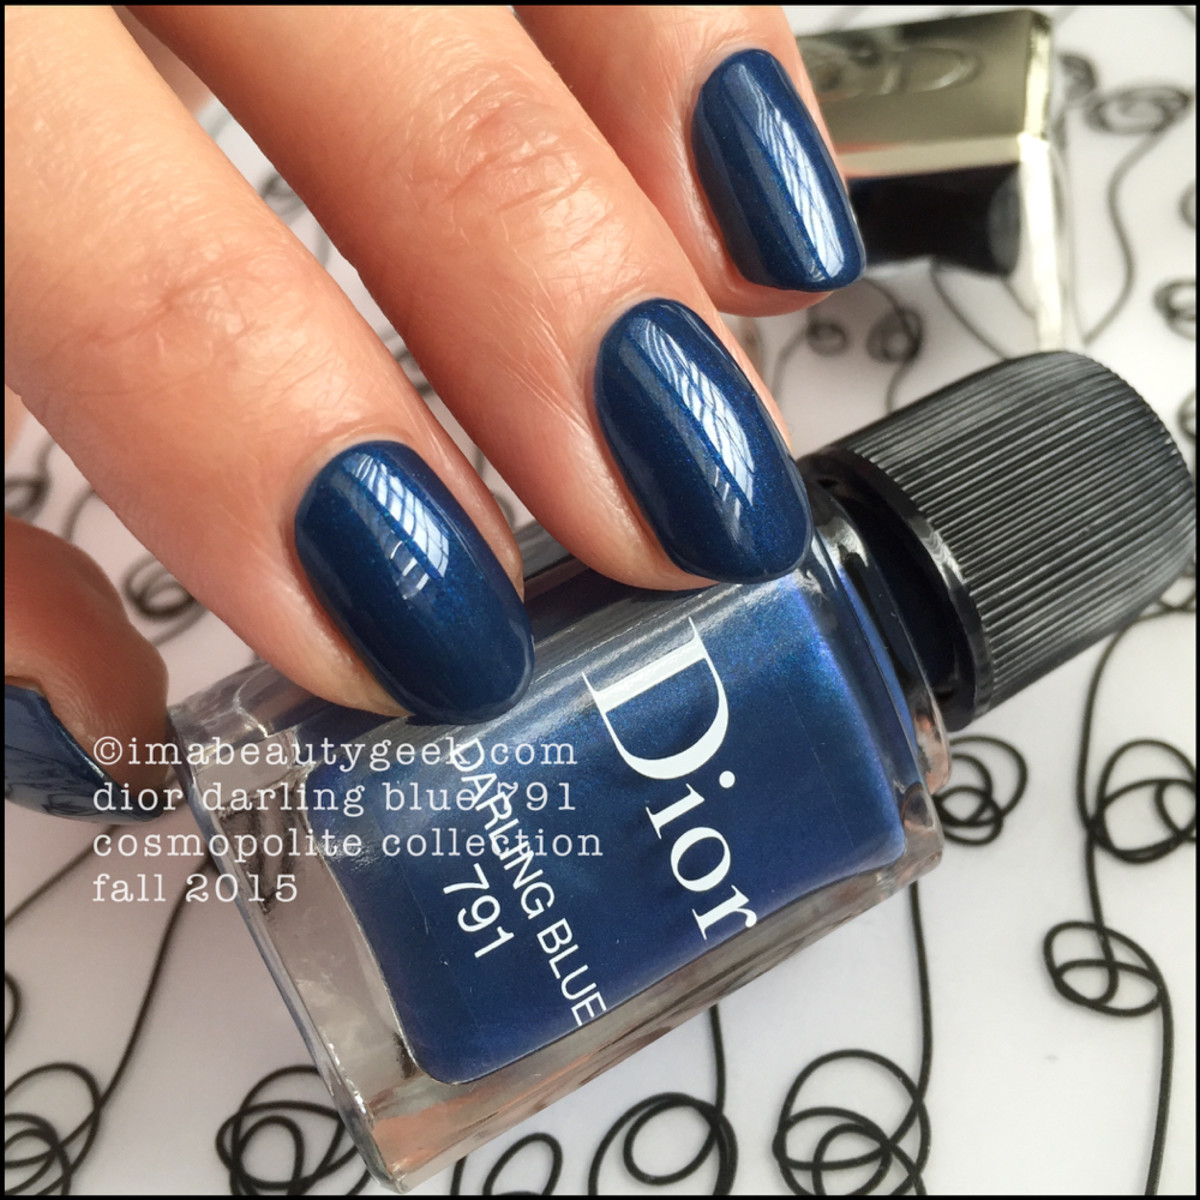 Dior Darling Blue 791 Vernis_Dior Cosmopolite Collection Fall 2015